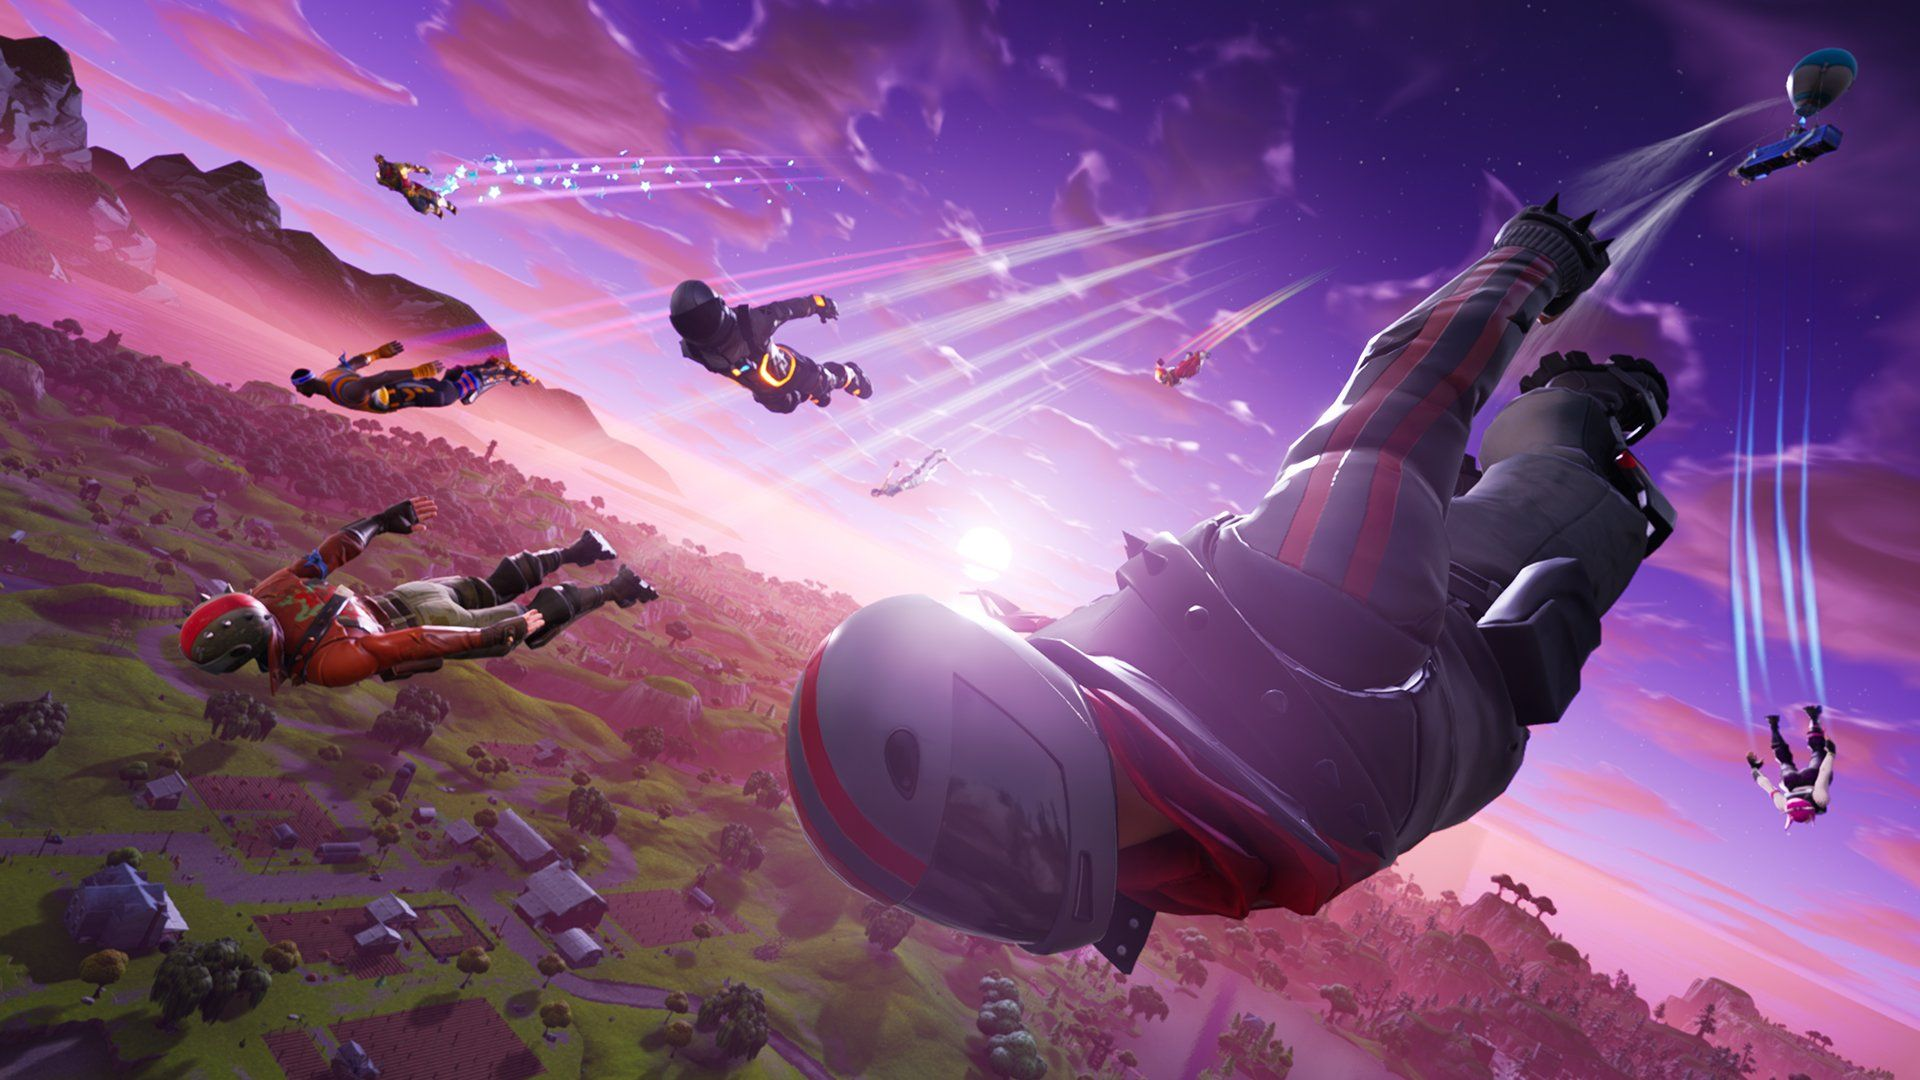 The latest Fortnite patch brings big changes to Battle Royale 1920x1080